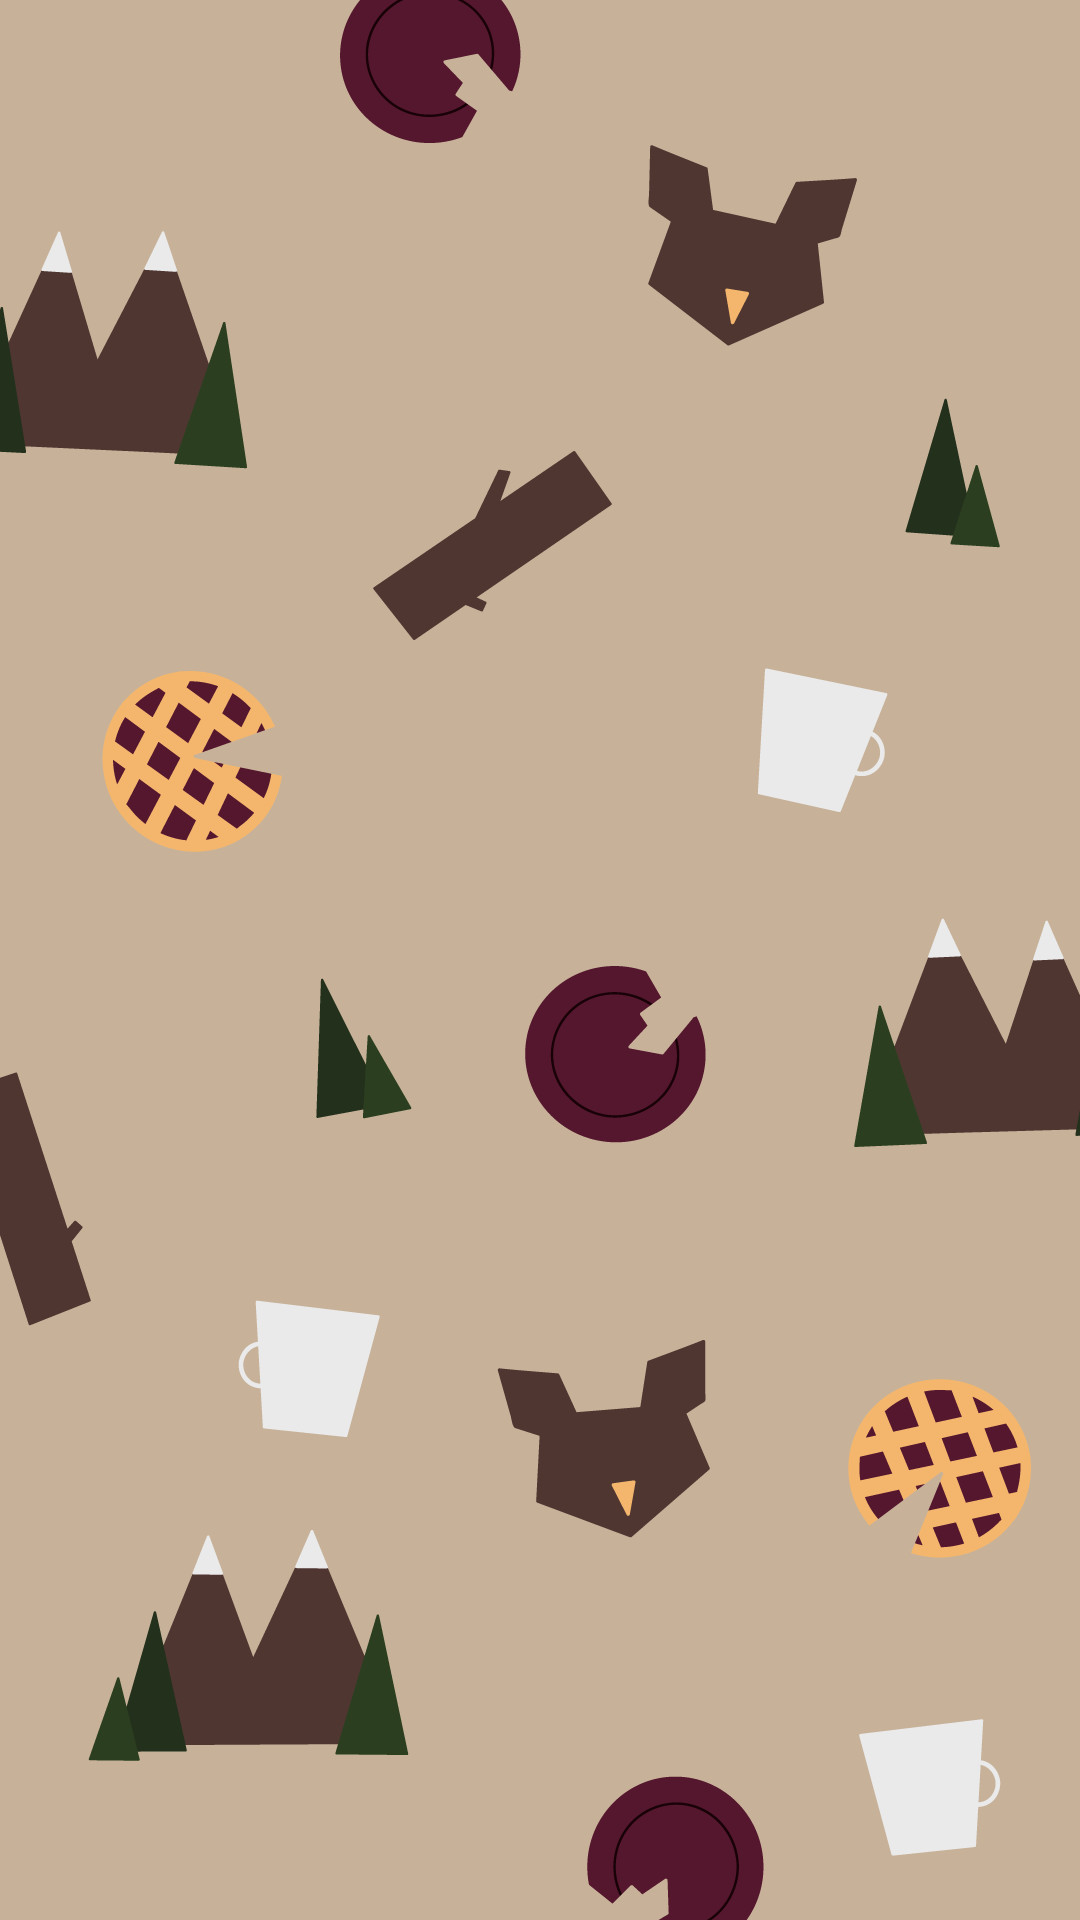 Free Twin Peaks inspired wallpapers cause I'm a beautiful human being